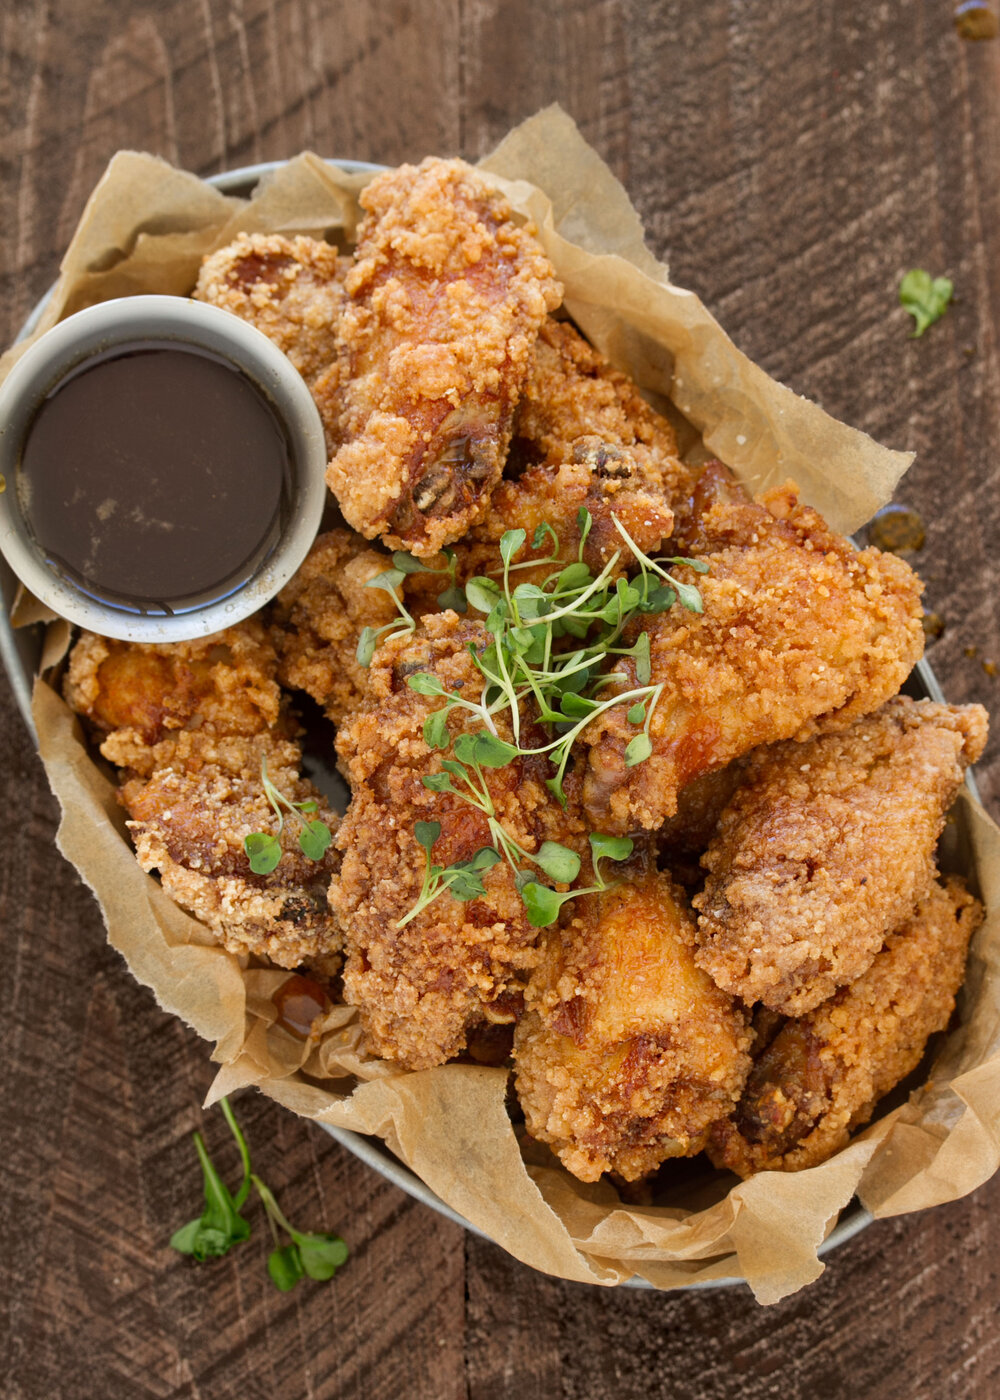 Fried Chicken and Waffle Wings with Bourbon Maple Syrup